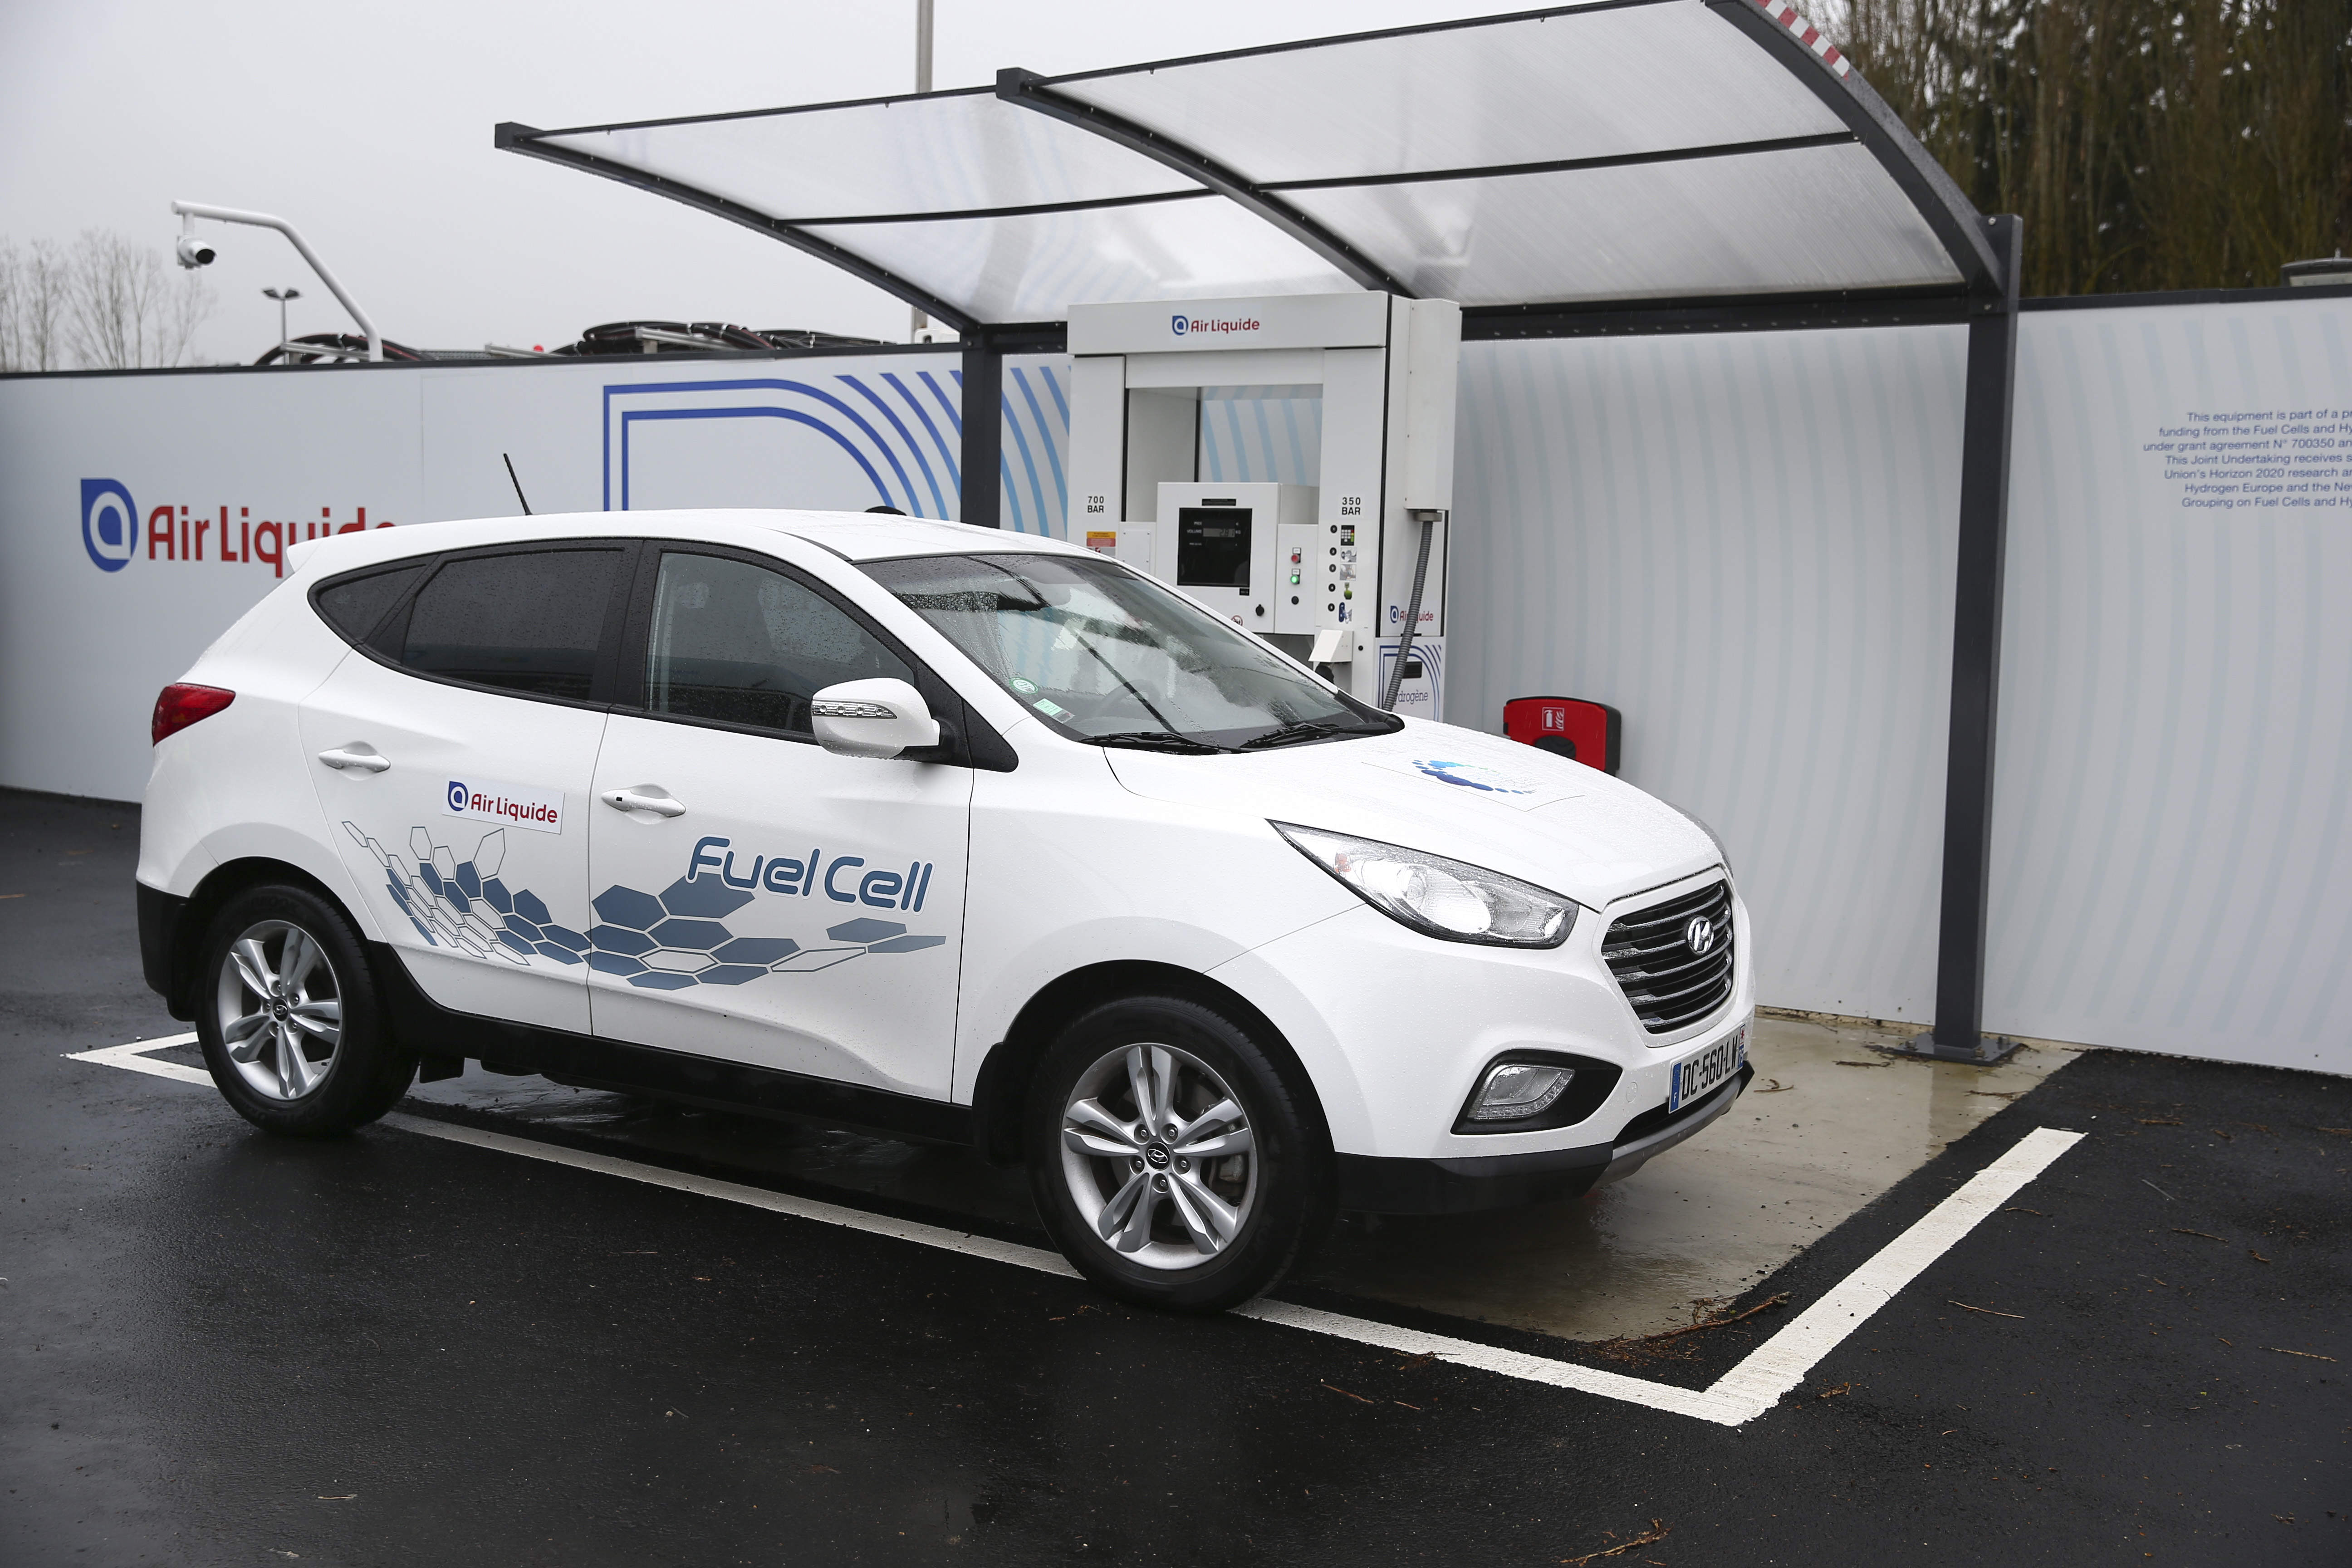 Hydrogen-fuelled-car-Air-Liquide